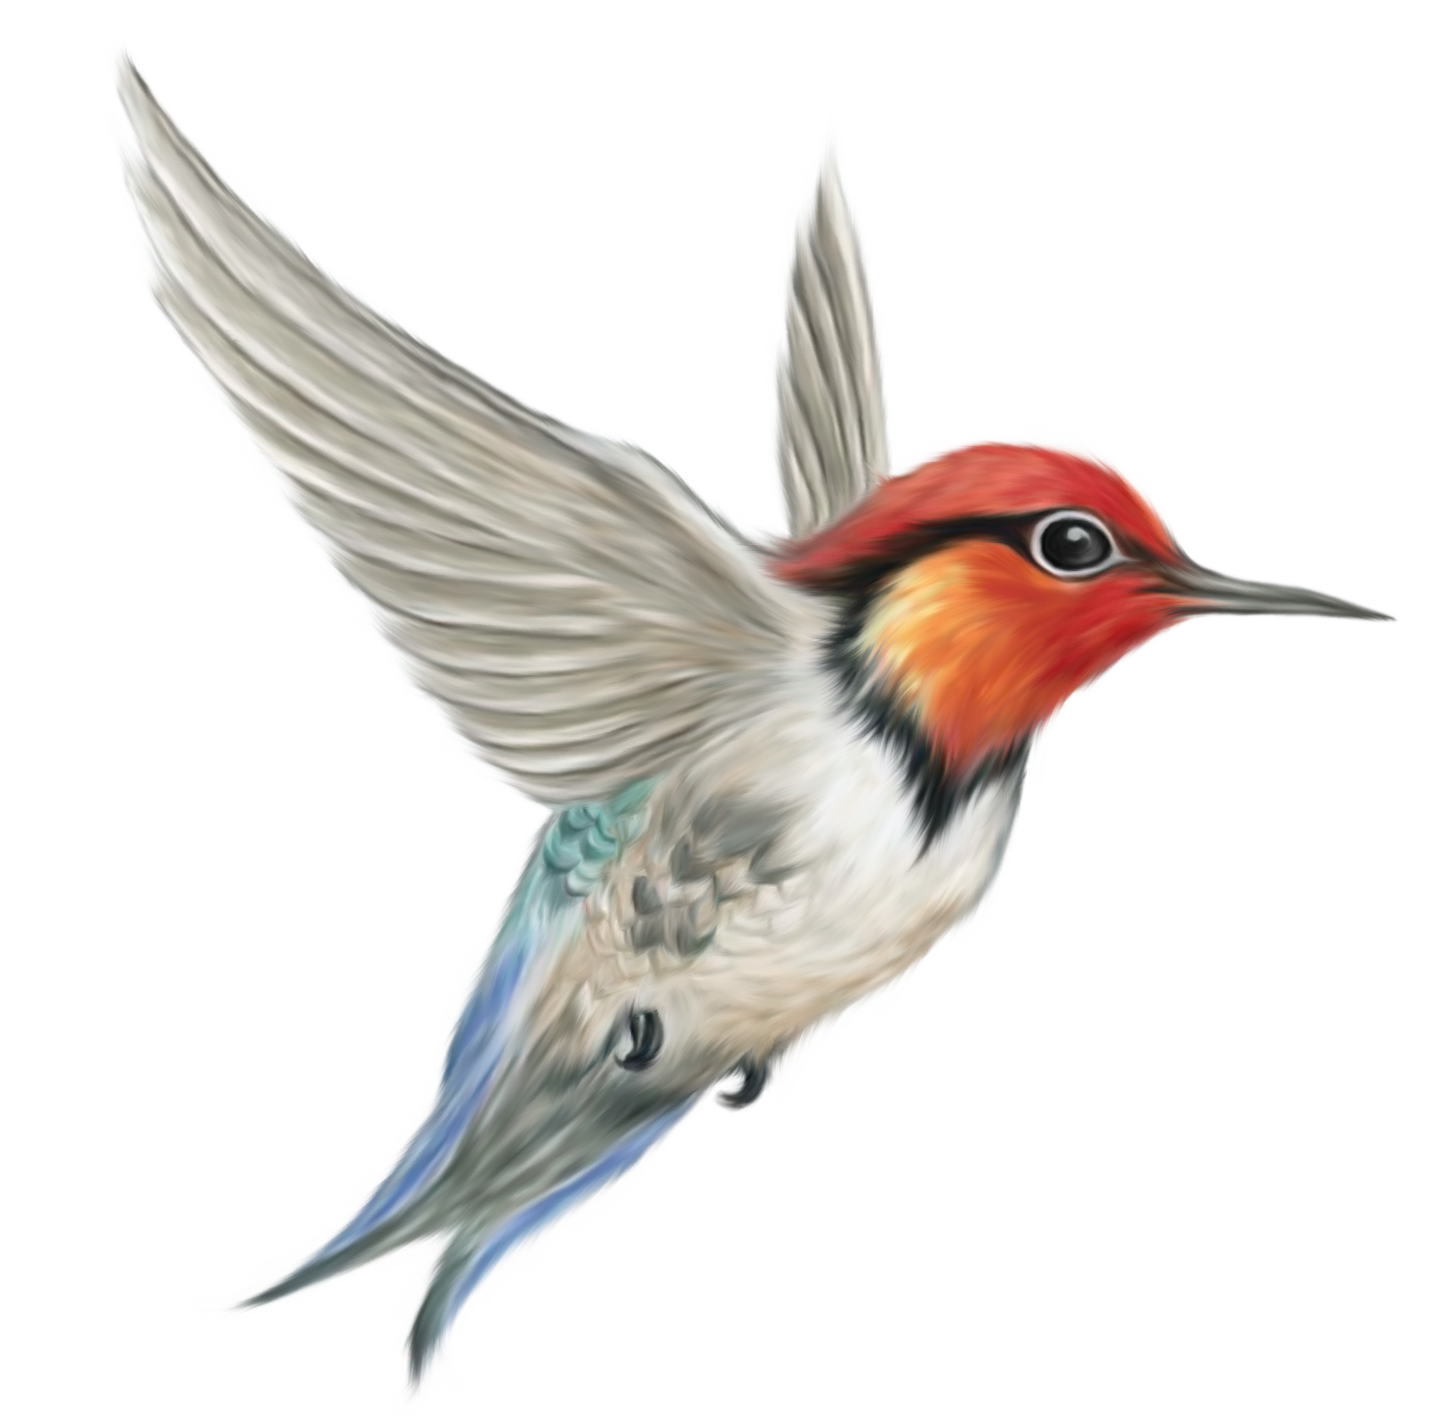 Bird png. Birds images free download